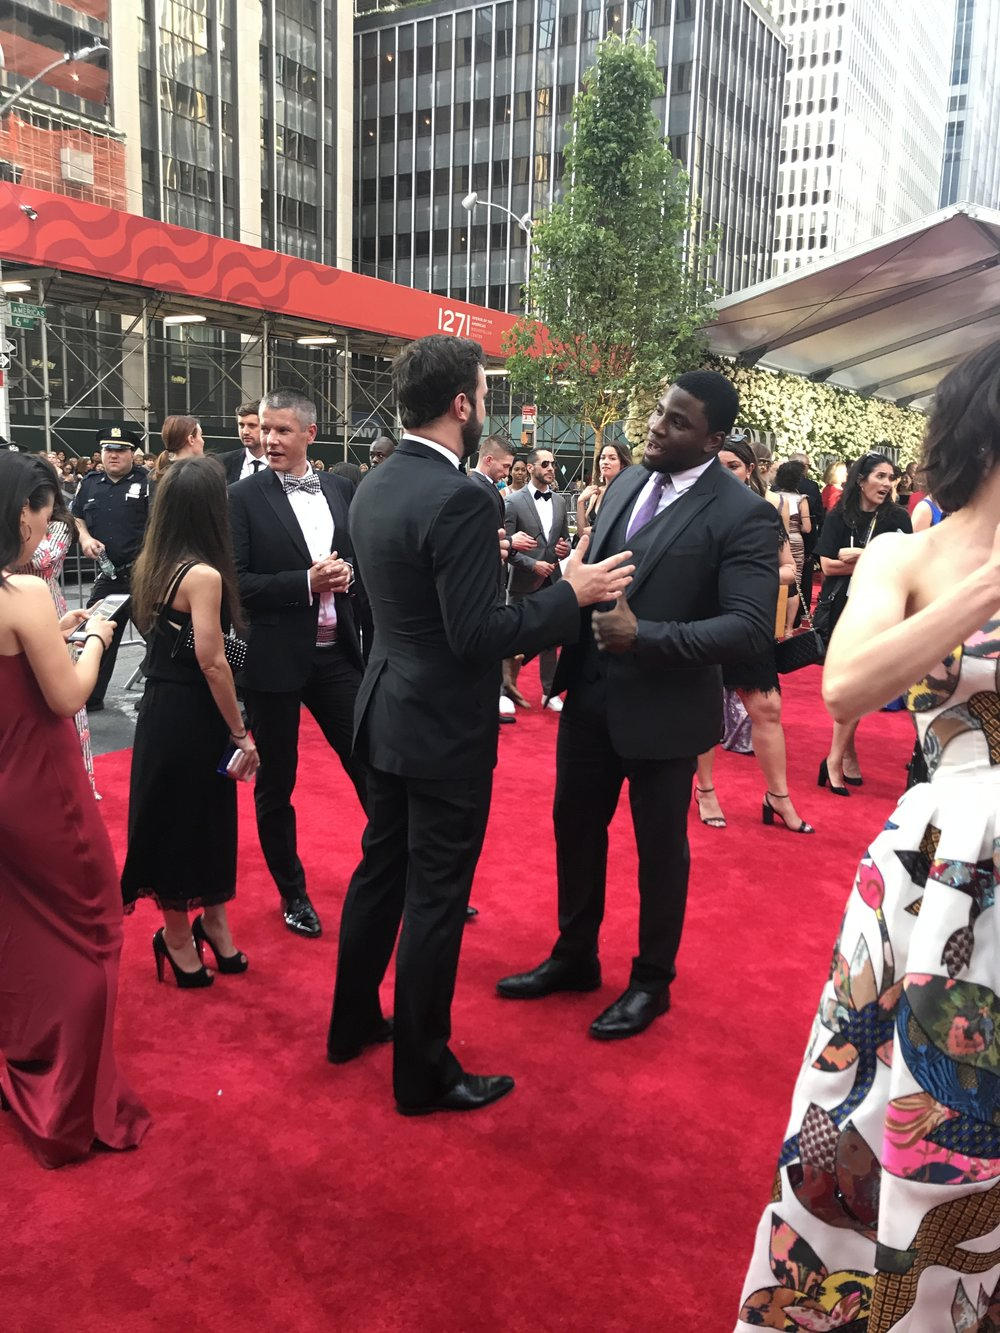 Hamilton  co-stars Okieriete Onaodowan and Taran Killam chat on the red carpet.